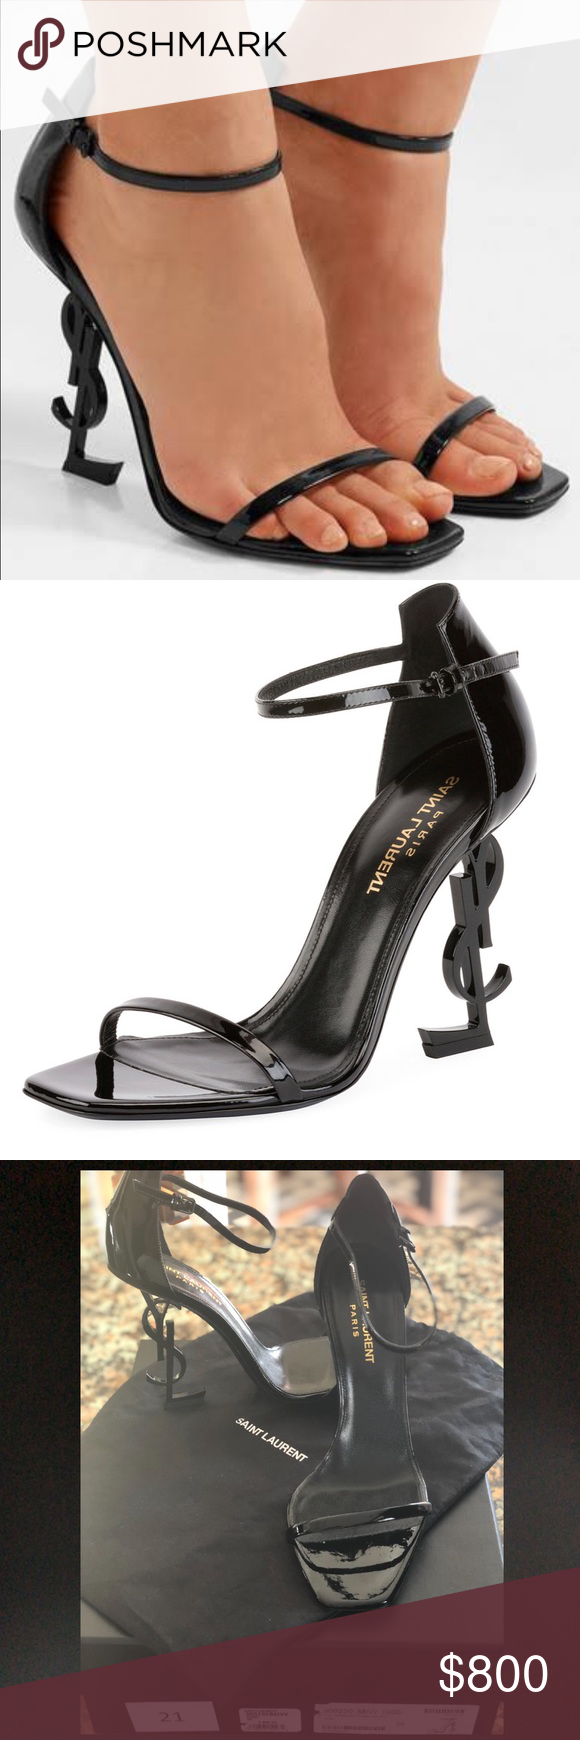 1d7fab23a92d Saint Laurent YSL Patent Sandal with Logo Heel 💥Price Drop💥 Great deal  for these sexy